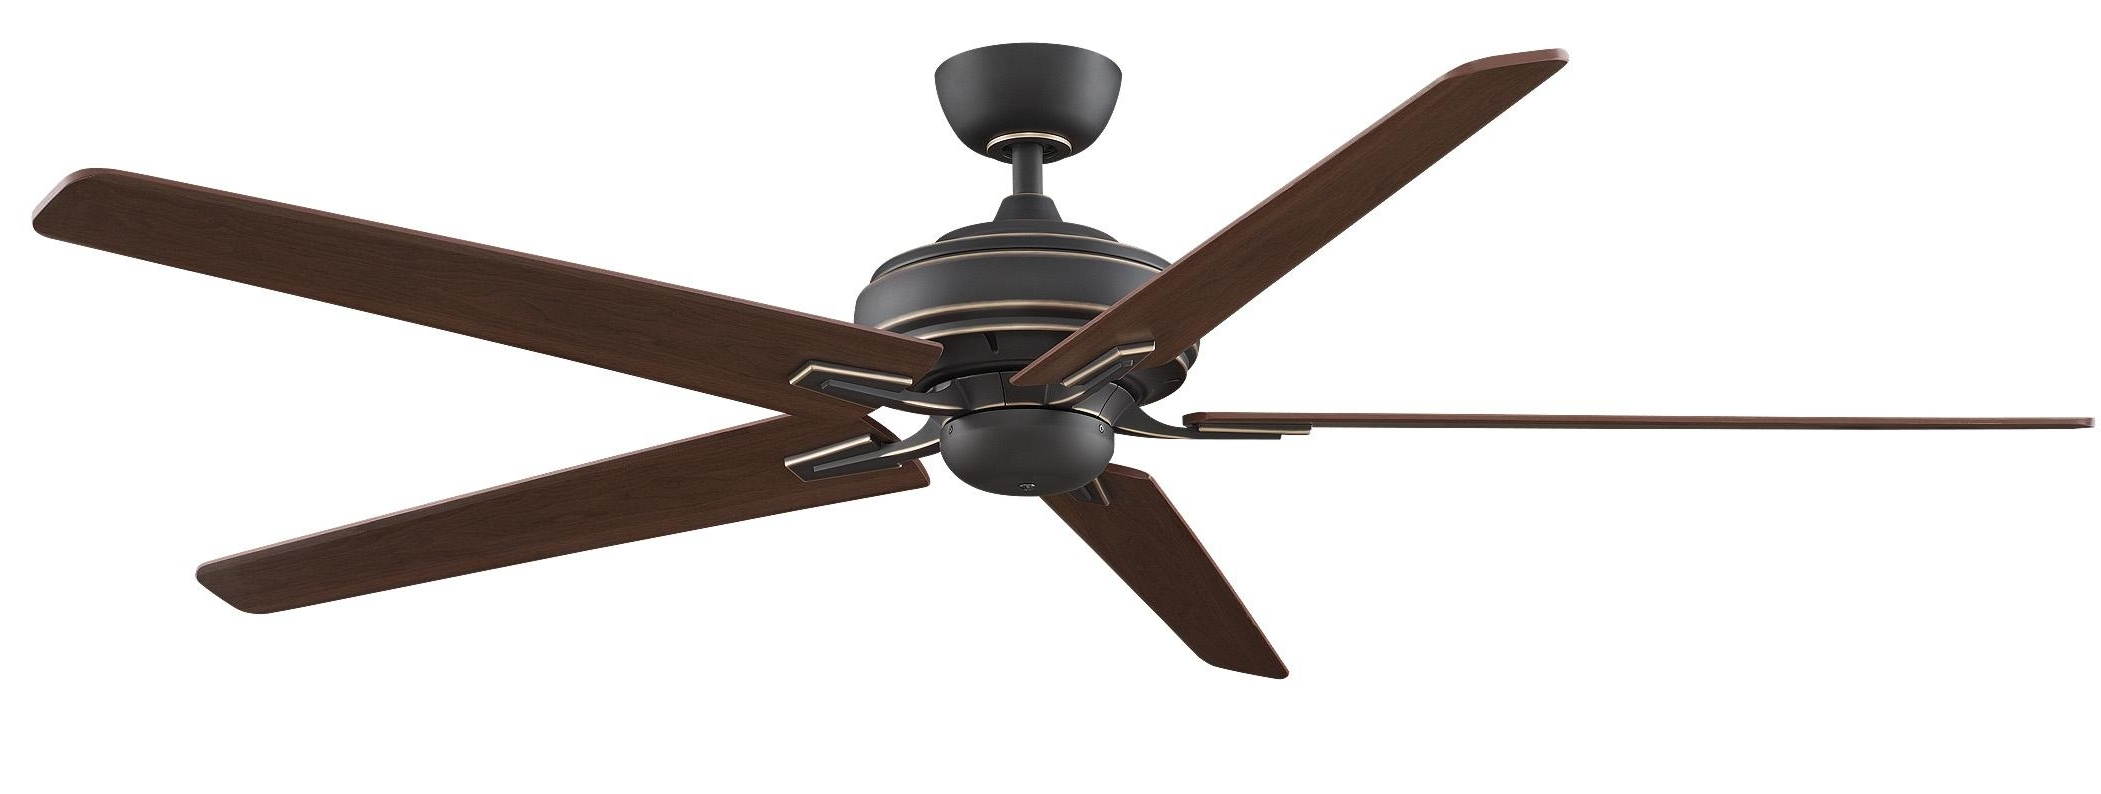 Inch Outdoor Ceiling Fan With 60 Ceiling Fan With Light Intended For Fashionable 72 Inch Outdoor Ceiling Fans (View 12 of 20)